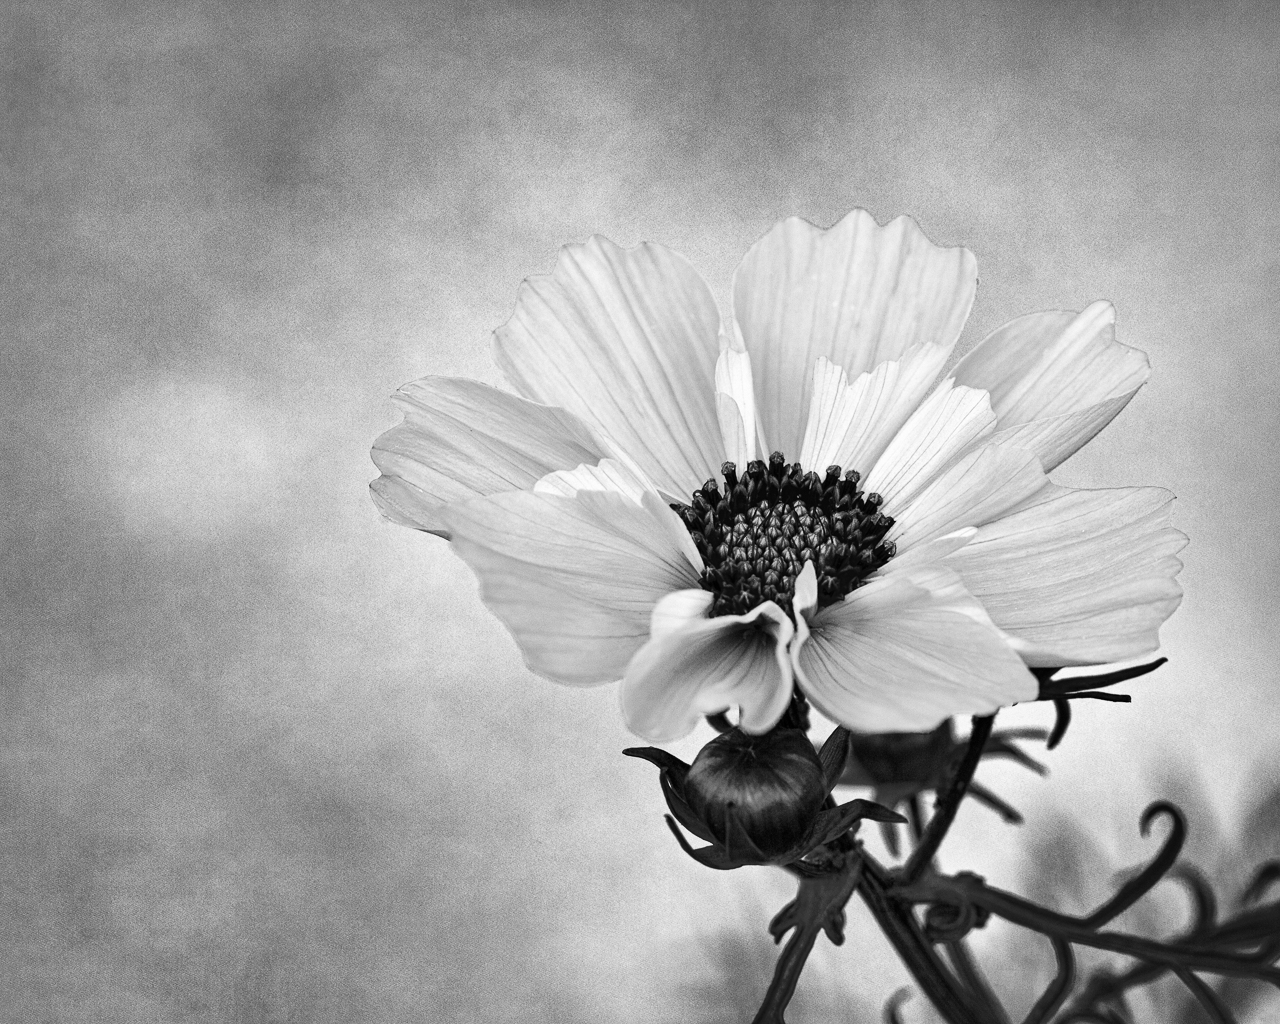 cosmos, black and white photography